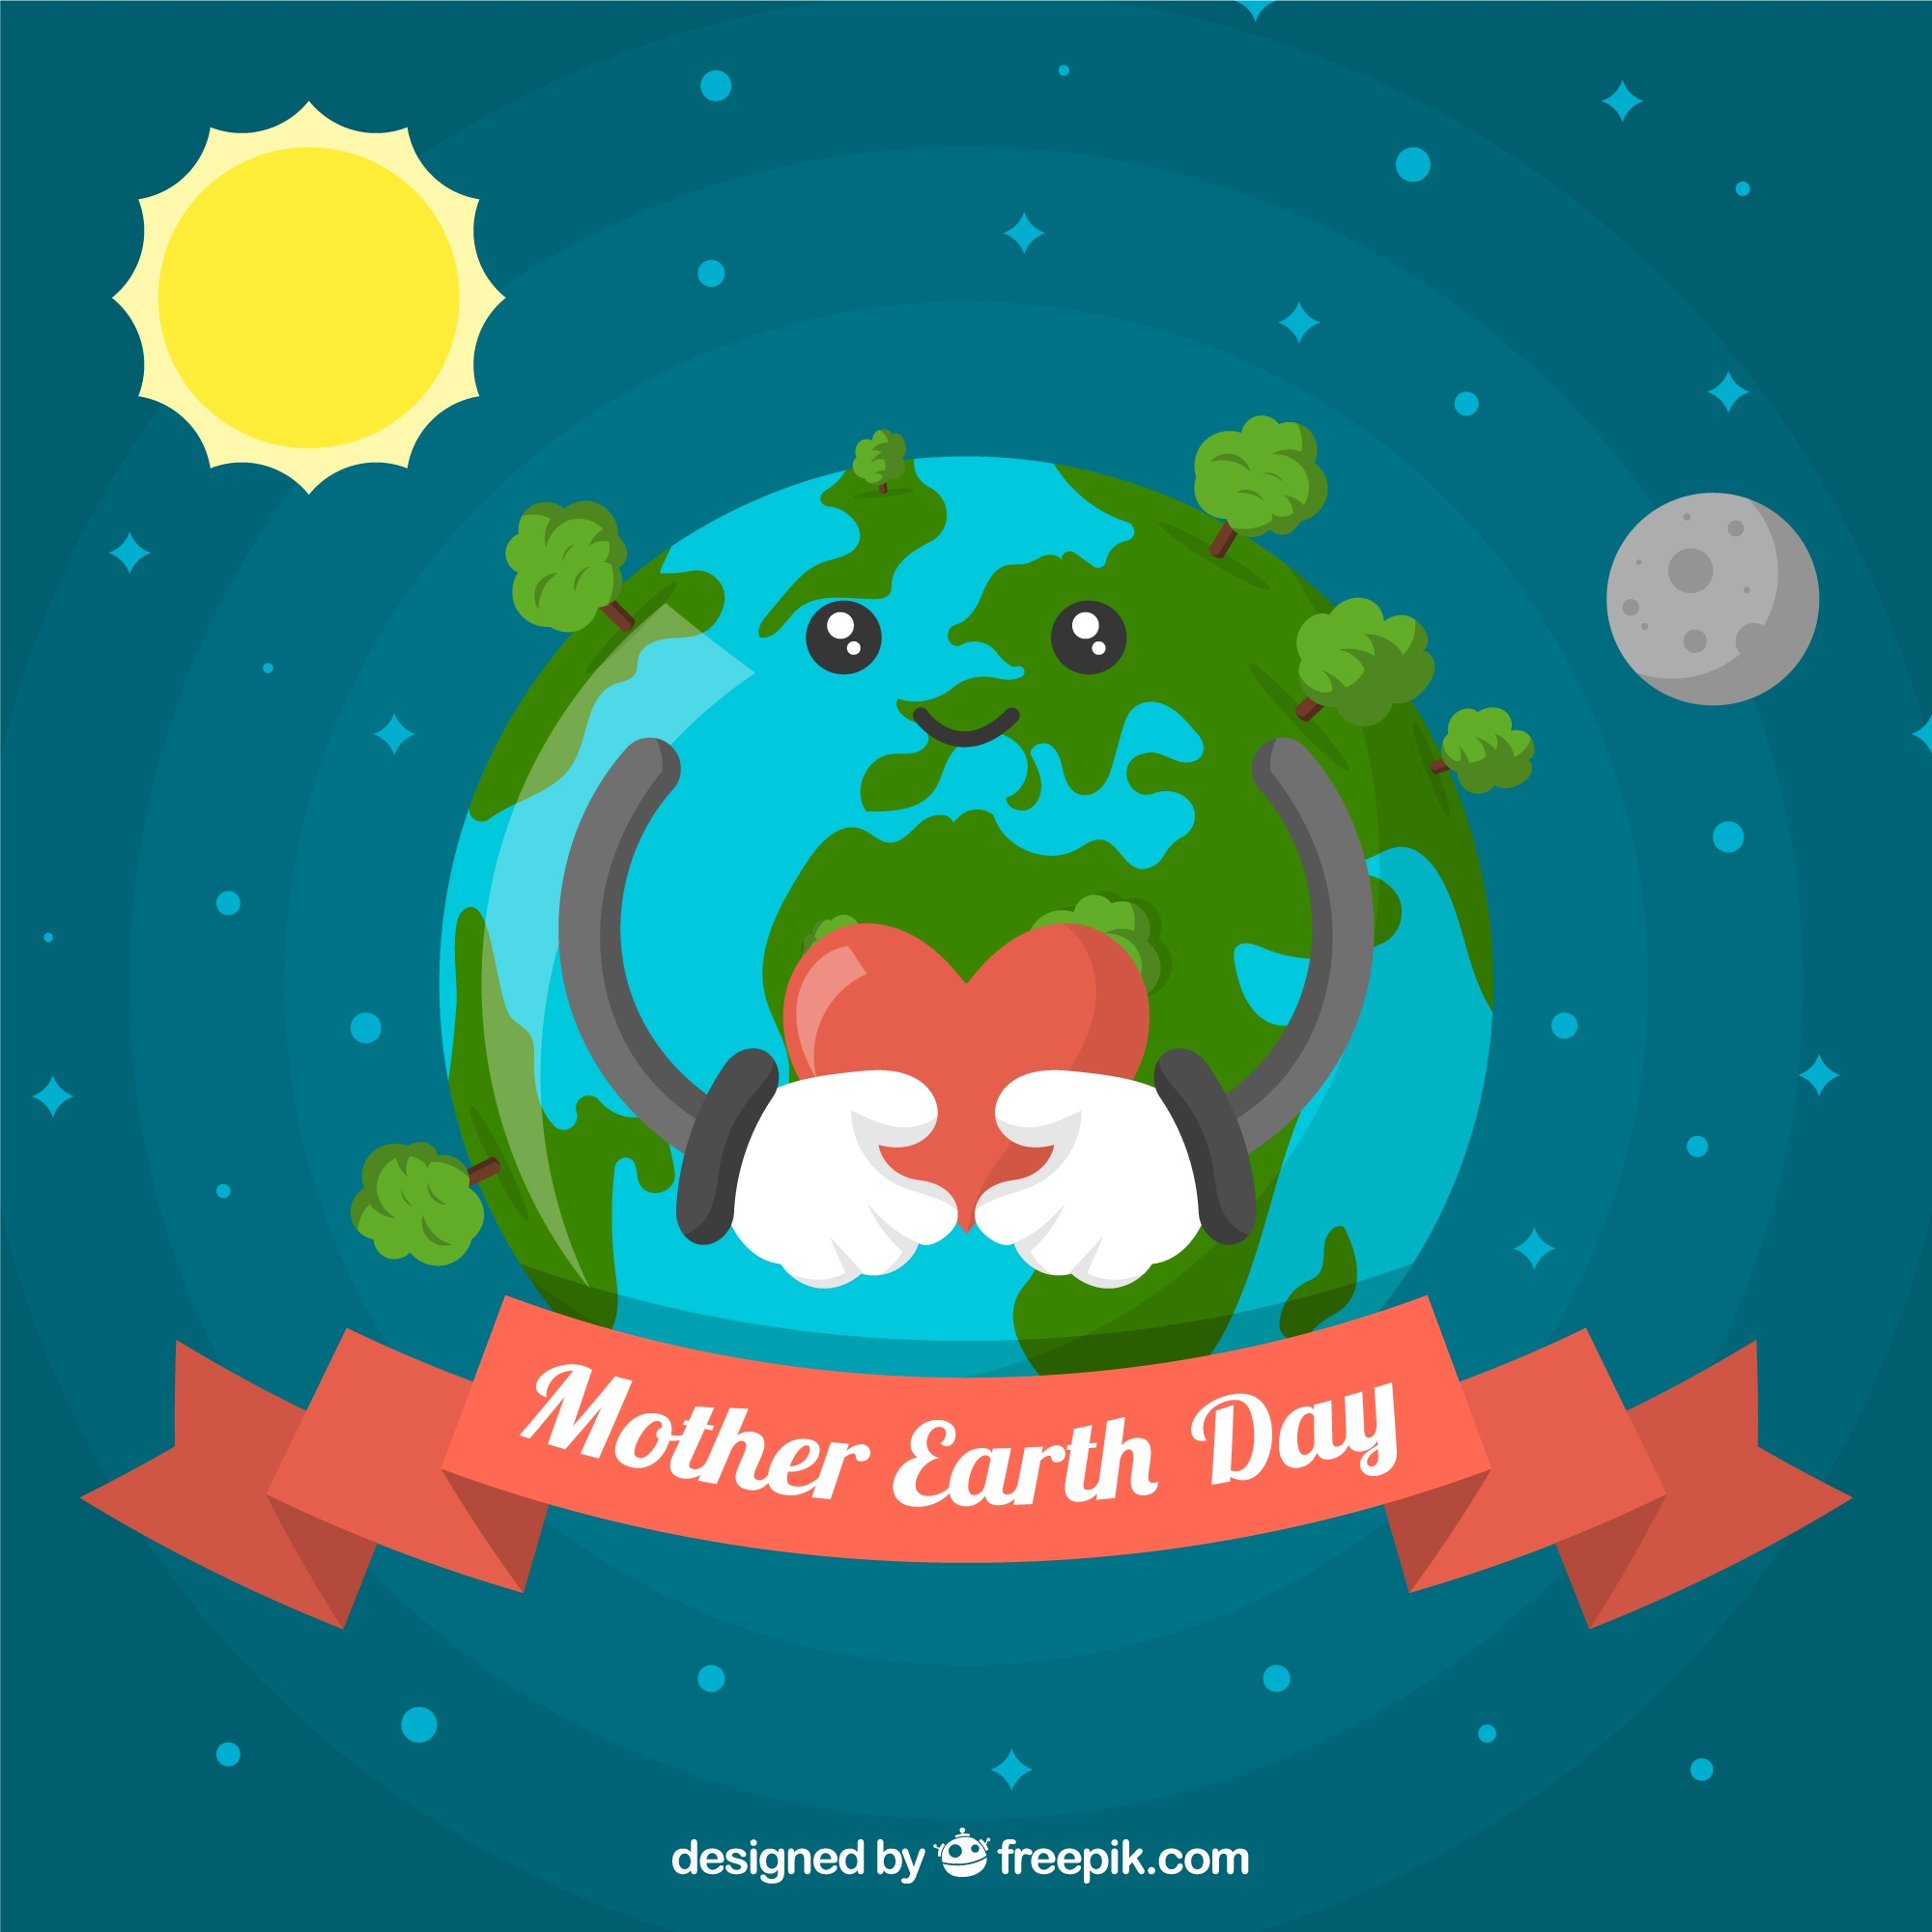 Background for mother earth day in flat design